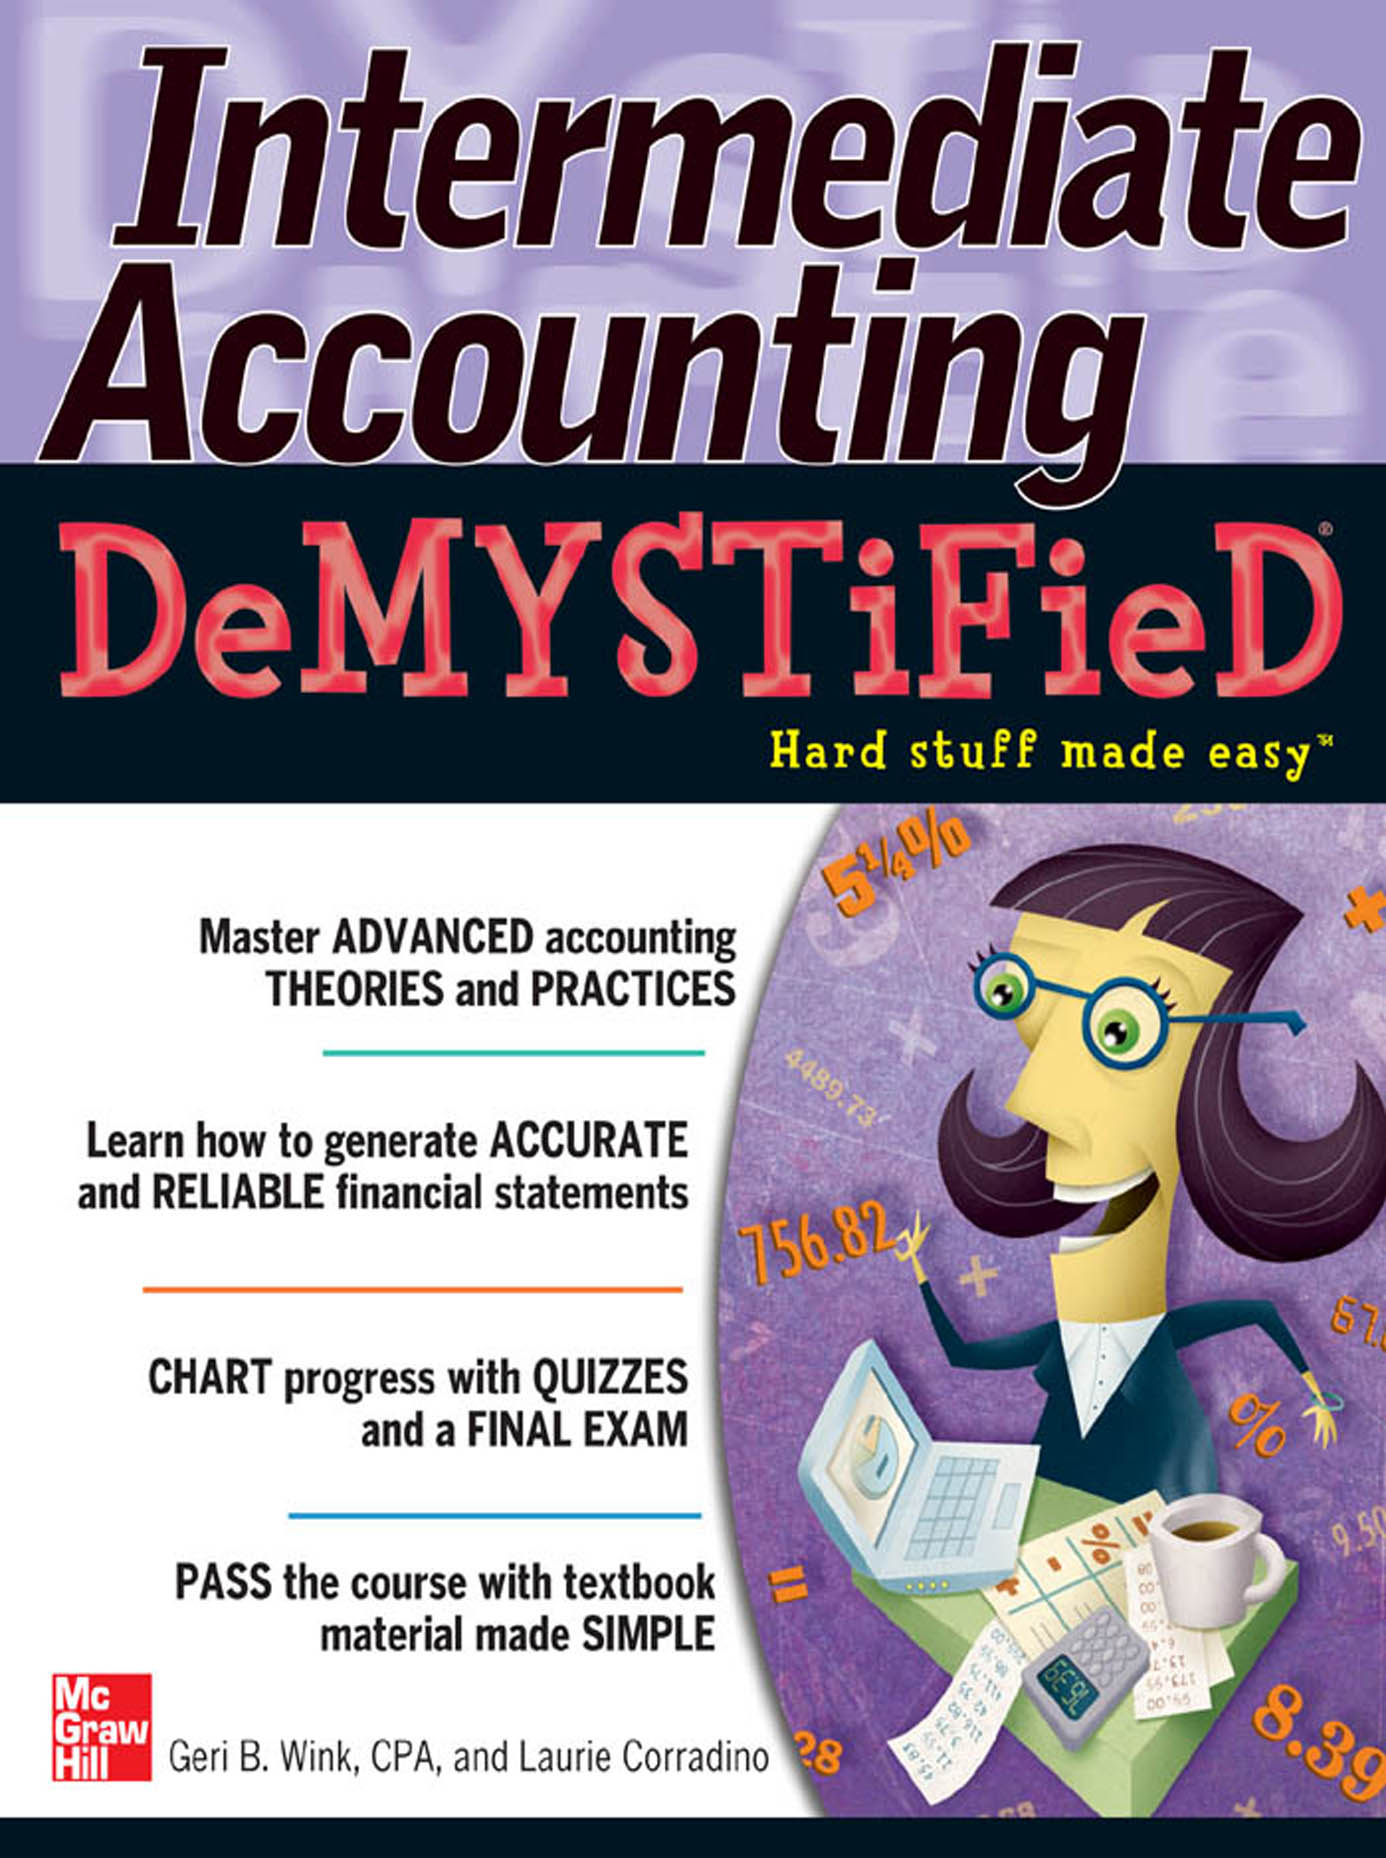 Download Ebook Intermediate Accounting DeMYSTiFieD by Geri B. Wink Pdf